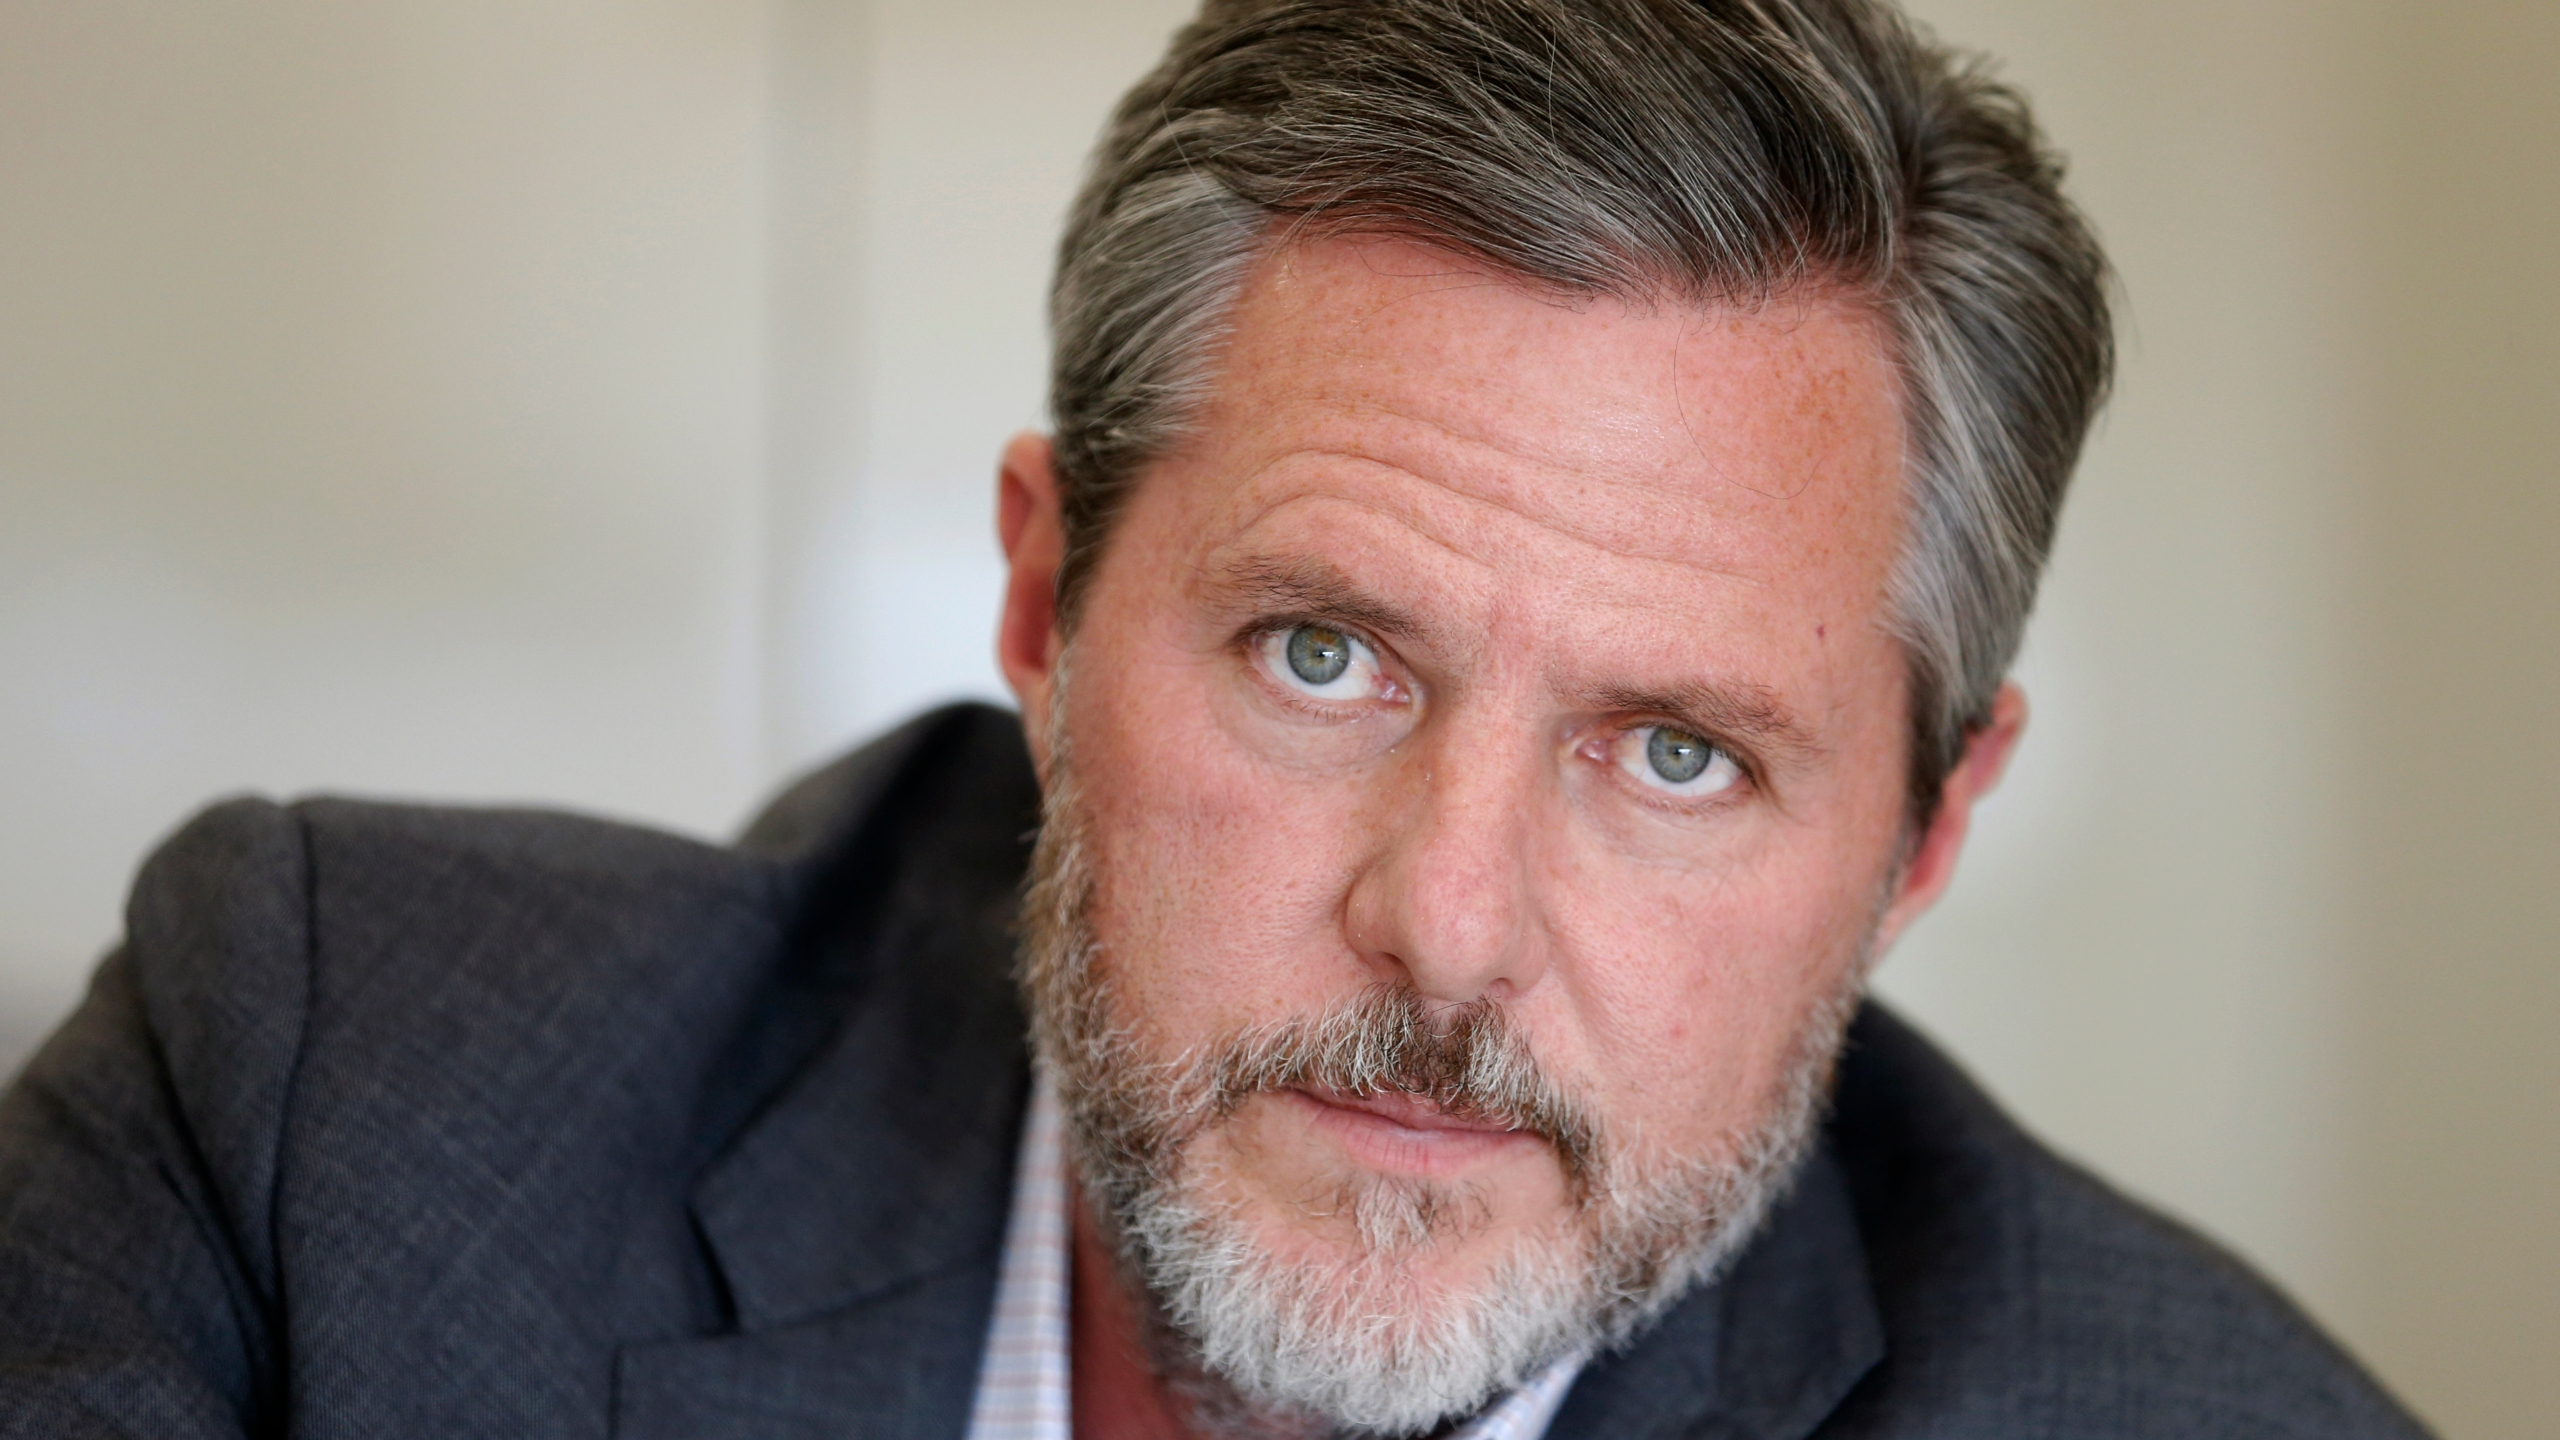 Jerry Falwell Jr.